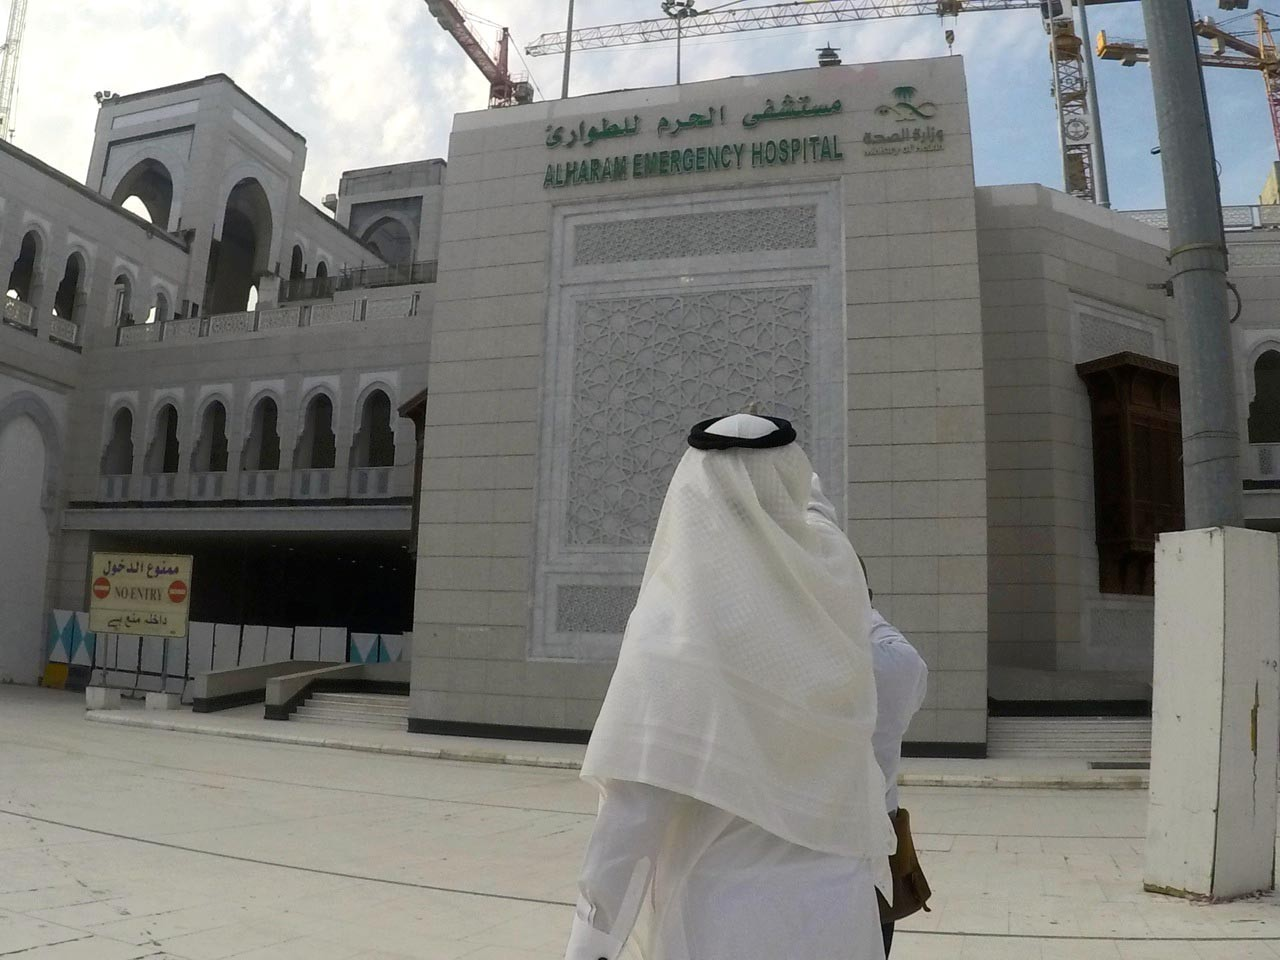 Hospital for pilgrims: A new state-of- the-art and modern hospital is built adjacent to Al-Haram Mosque in Mecca. The free hospital is open for two months of the year to serve pilgrims during the haj. JP/Endy M Bayuni